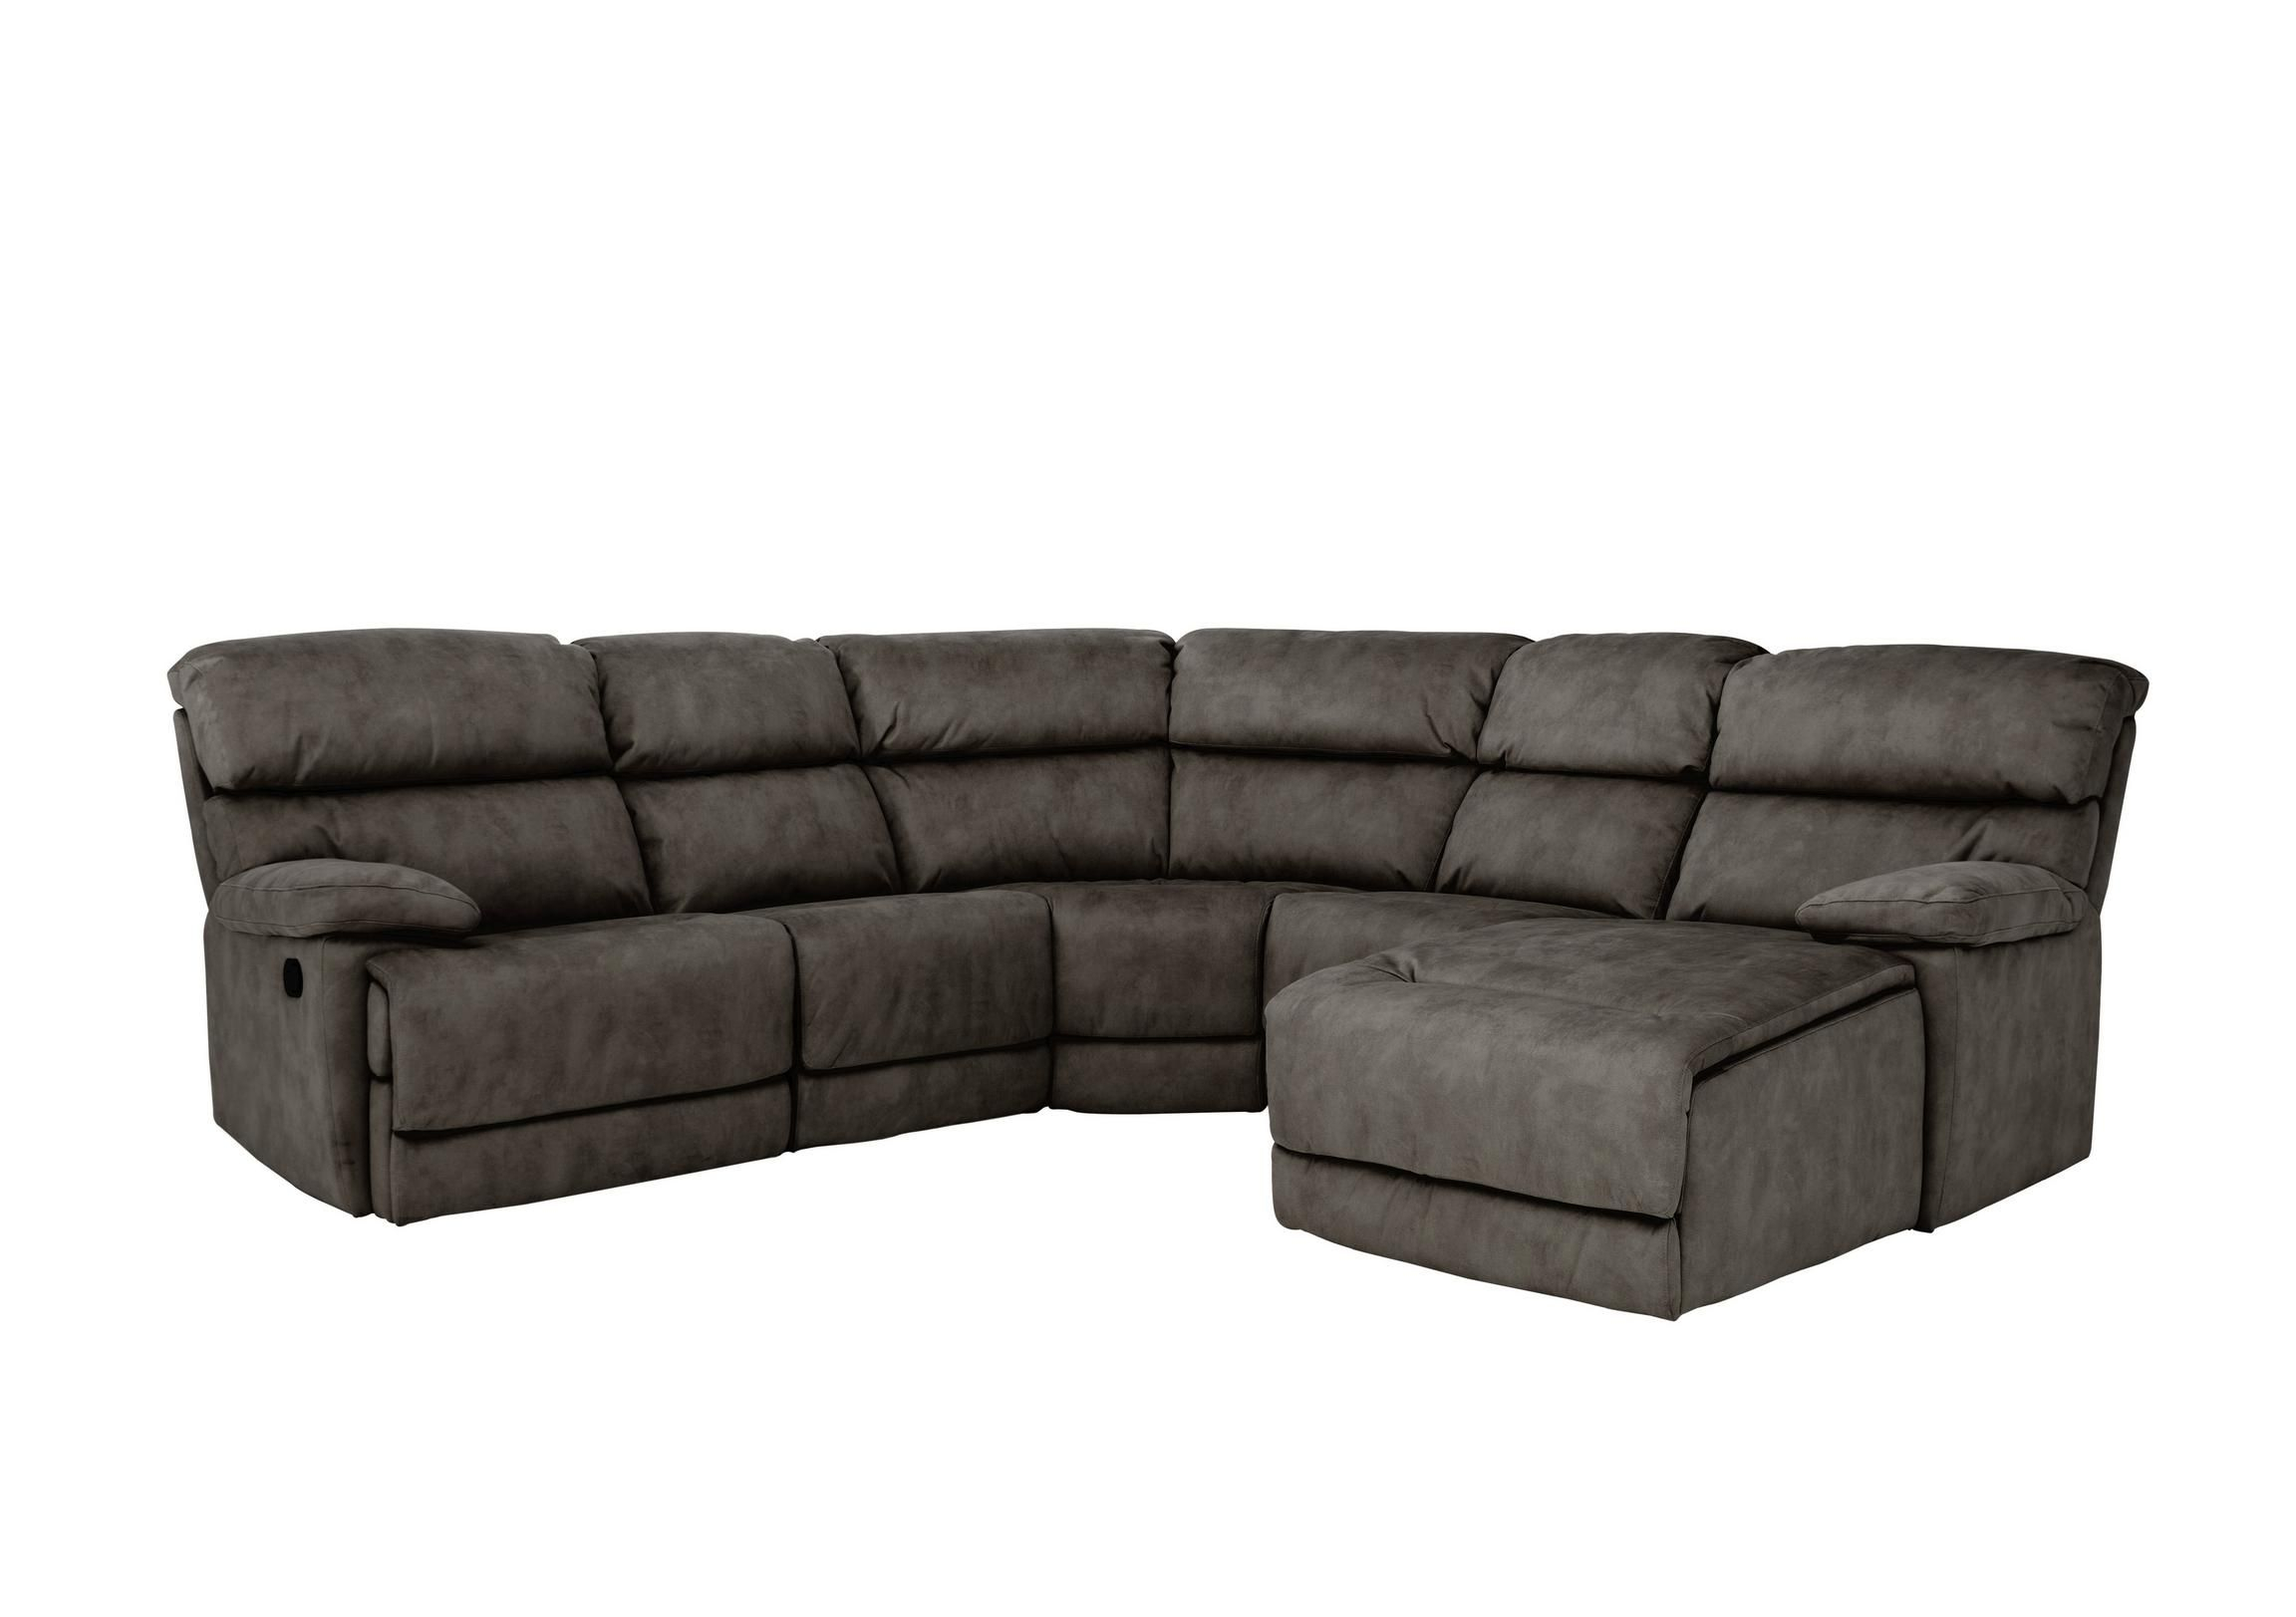 Beautifully Cushioned Fabric Corner Sofa Seats At Least 5 For Contempo Power Reclining Sofas (View 10 of 15)